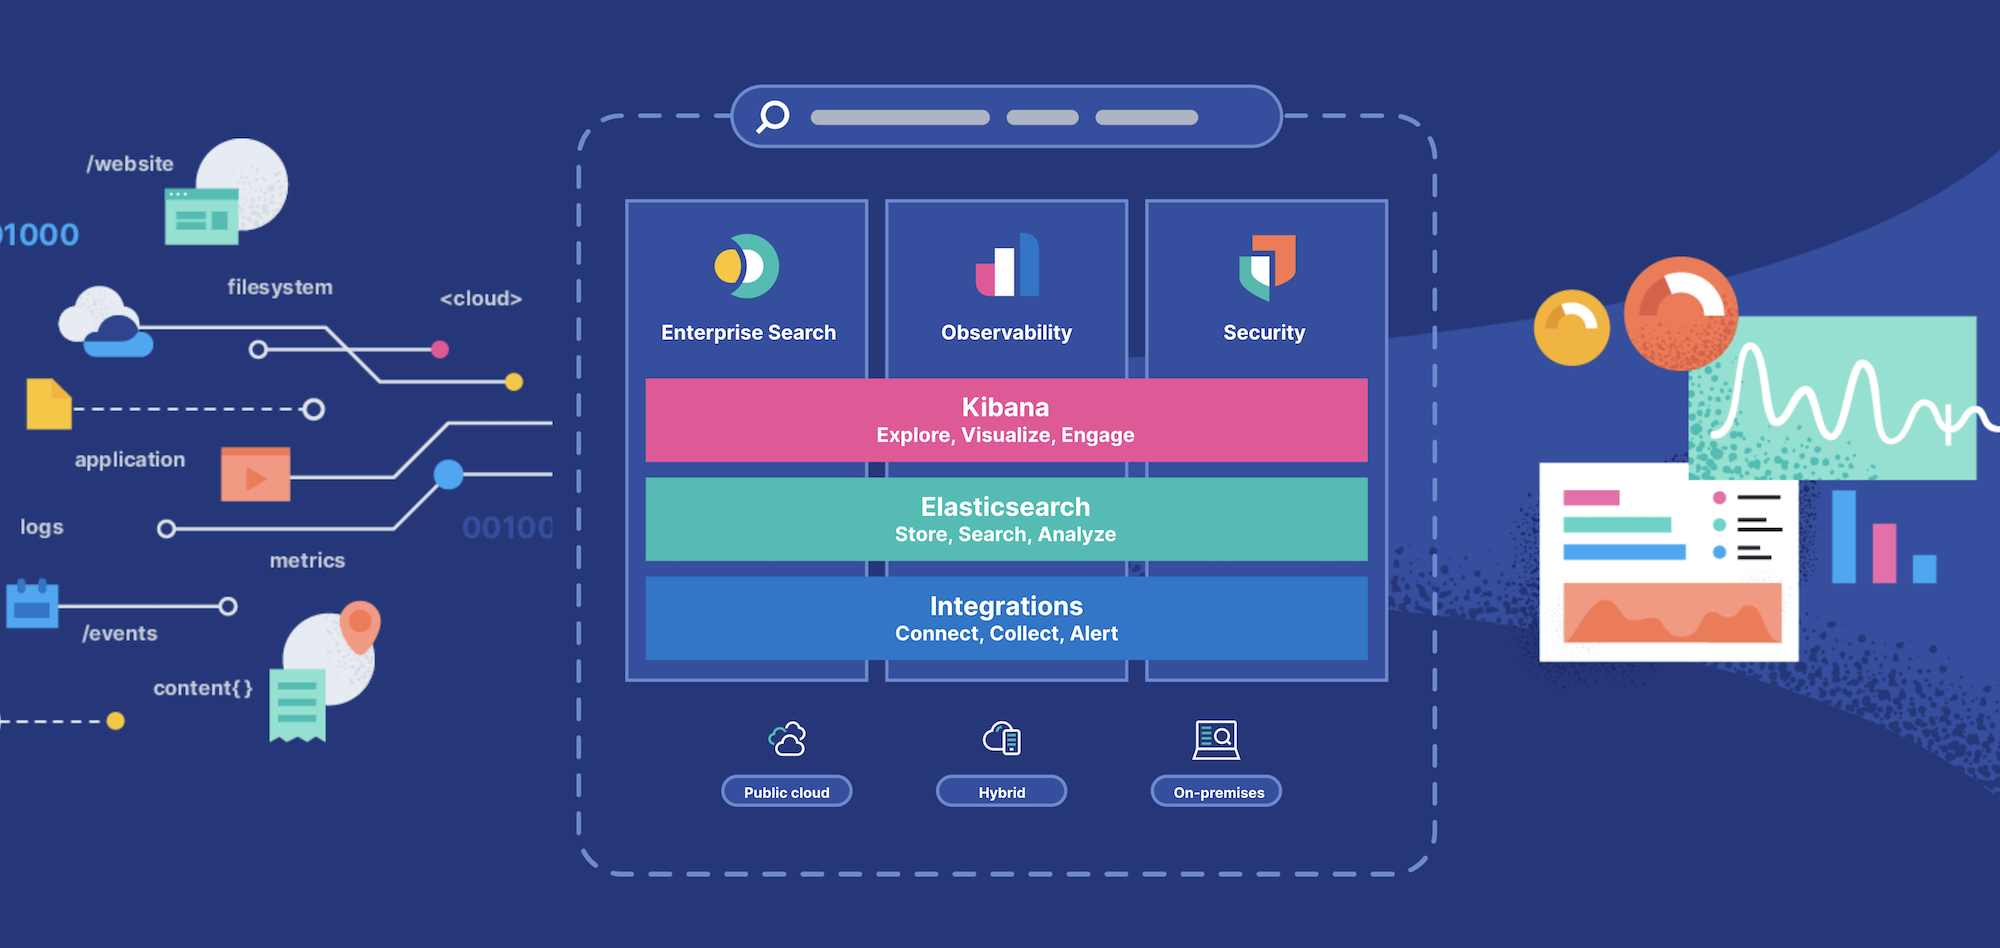 The Elastic Search Platform takes data challenges and turns them into insights.